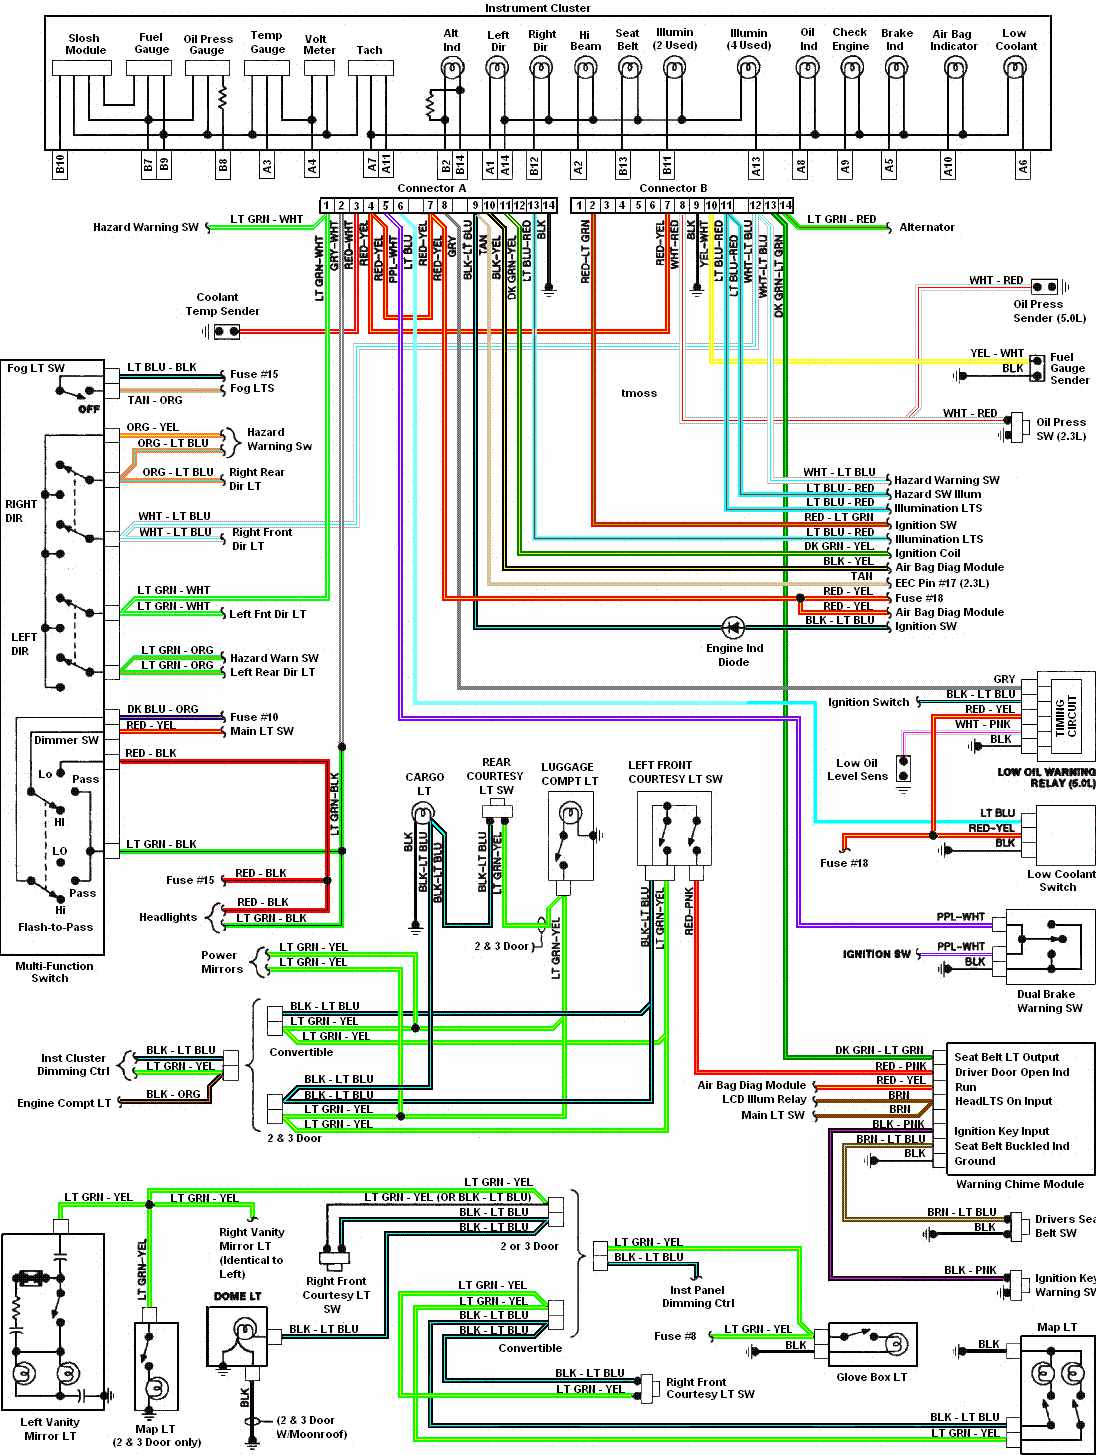 7roj4 Chevrolet C1500 4x2 Scottsdale Hey Dave together with Lsx Wiring For Dummies besides 2000 Gmc Jimmy Fuel Pump Relay Location as well  likewise 8 1 Chevy Vortec Engine Diagram. on truck wiring diagram on chevy trailblazer fuel injector location